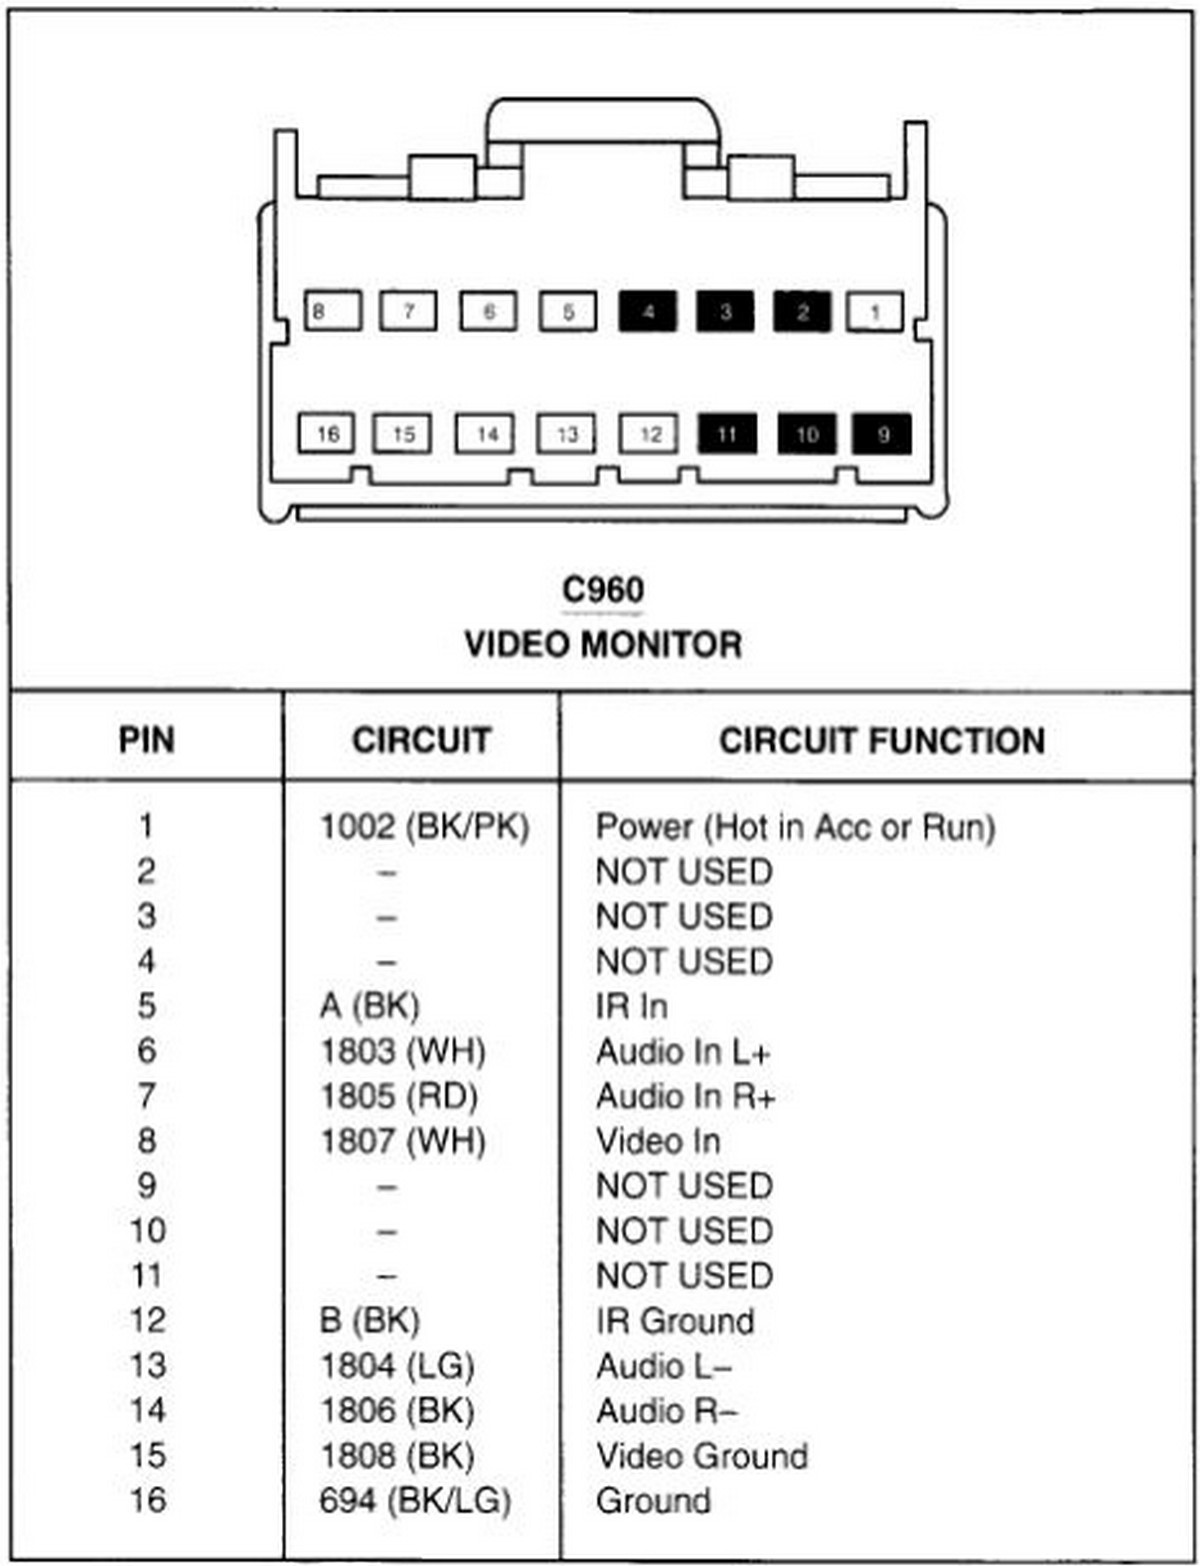 FORD Car Radio Stereo Audio Wiring Diagram Autoradio connector wire Wiring Diagram Ford Radio on ford stereo wiring, ford radio wiring color code, ford wire diagram, ford radio wiring adapter, ford radio connector diagram, honda radio wire diagram, ford focus radio diagram, ford radio wire colors, ford thermostat diagram, ford radio schematics, ford truck wiring diagrams, ford radio system, ford focus 2012 radio input, honda accord radio diagram, ford mustang radio wiring, ford radio plug diagram, ford electrical diagram, ford f150 radio wiring, ford radio harness diagram, ford steering wheel diagram,